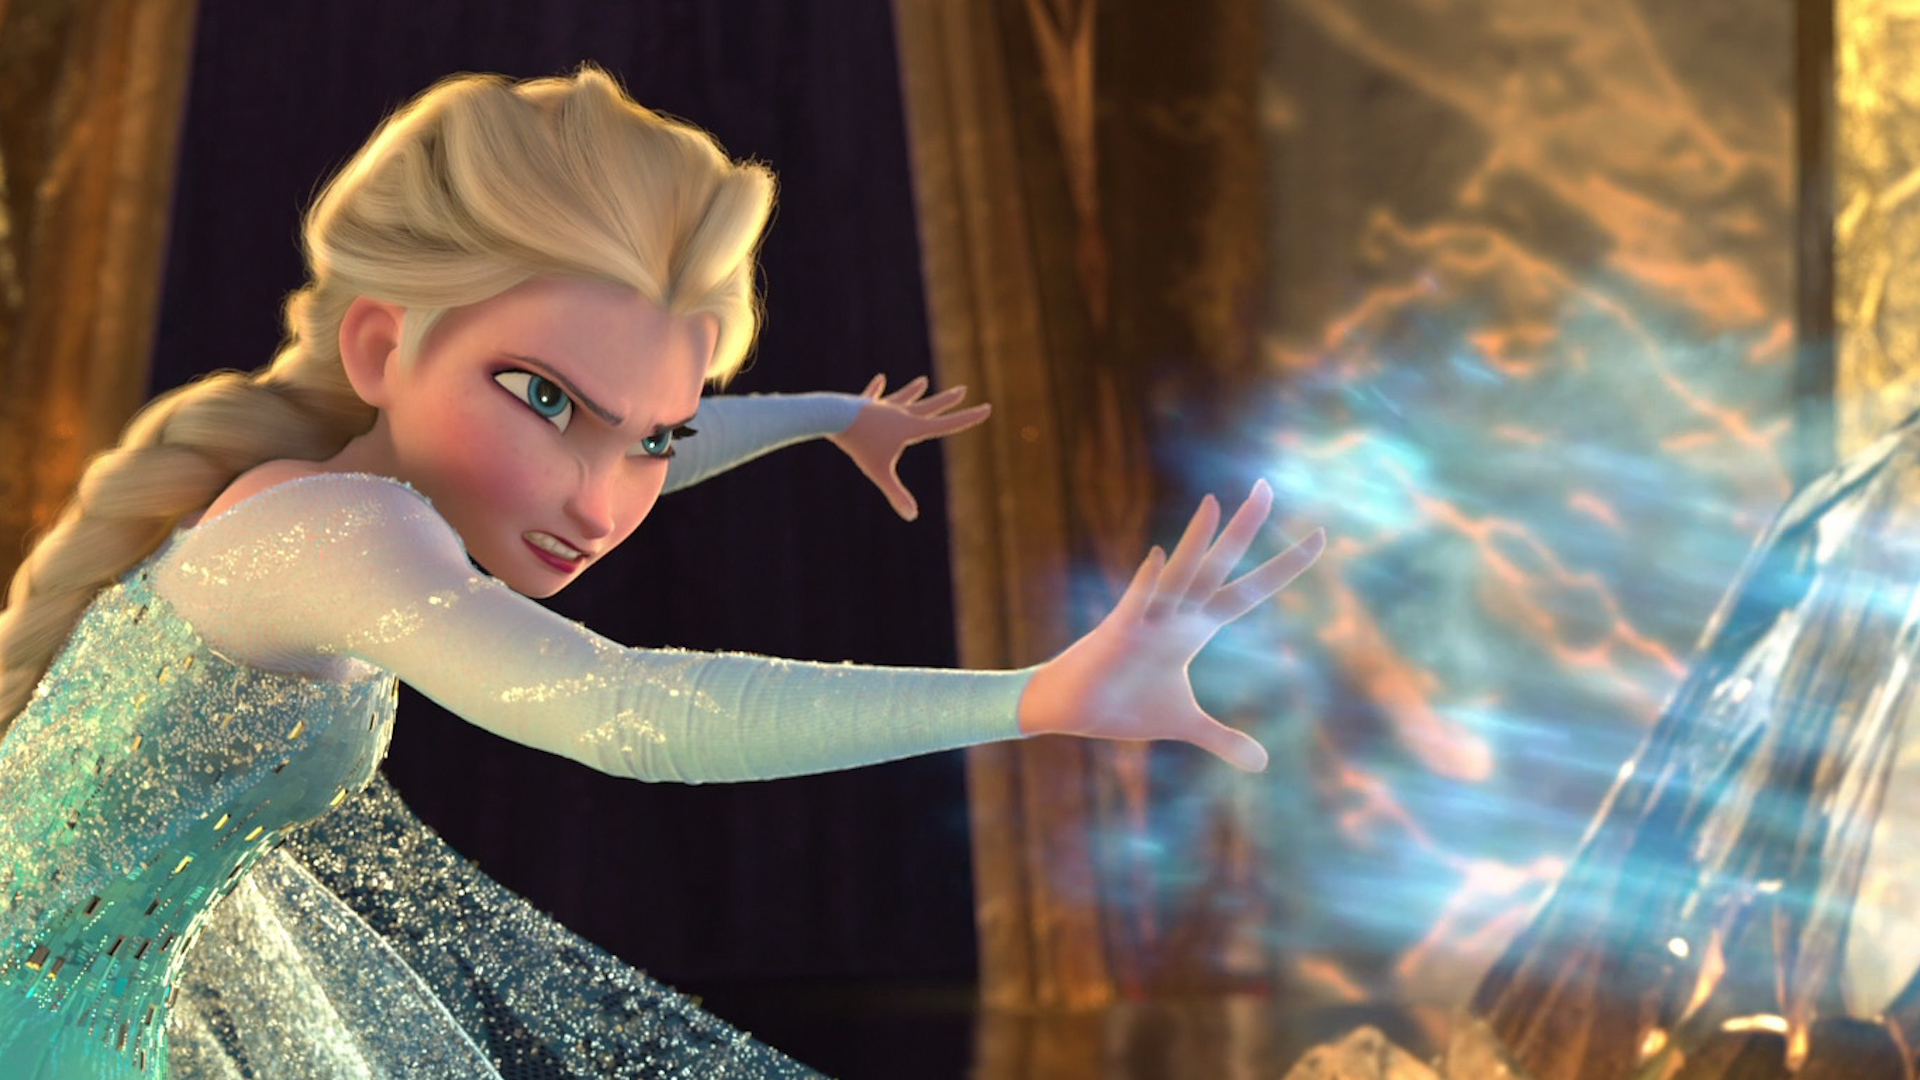 'Frozen' Facts You Should Know Before the Sequel Premieres